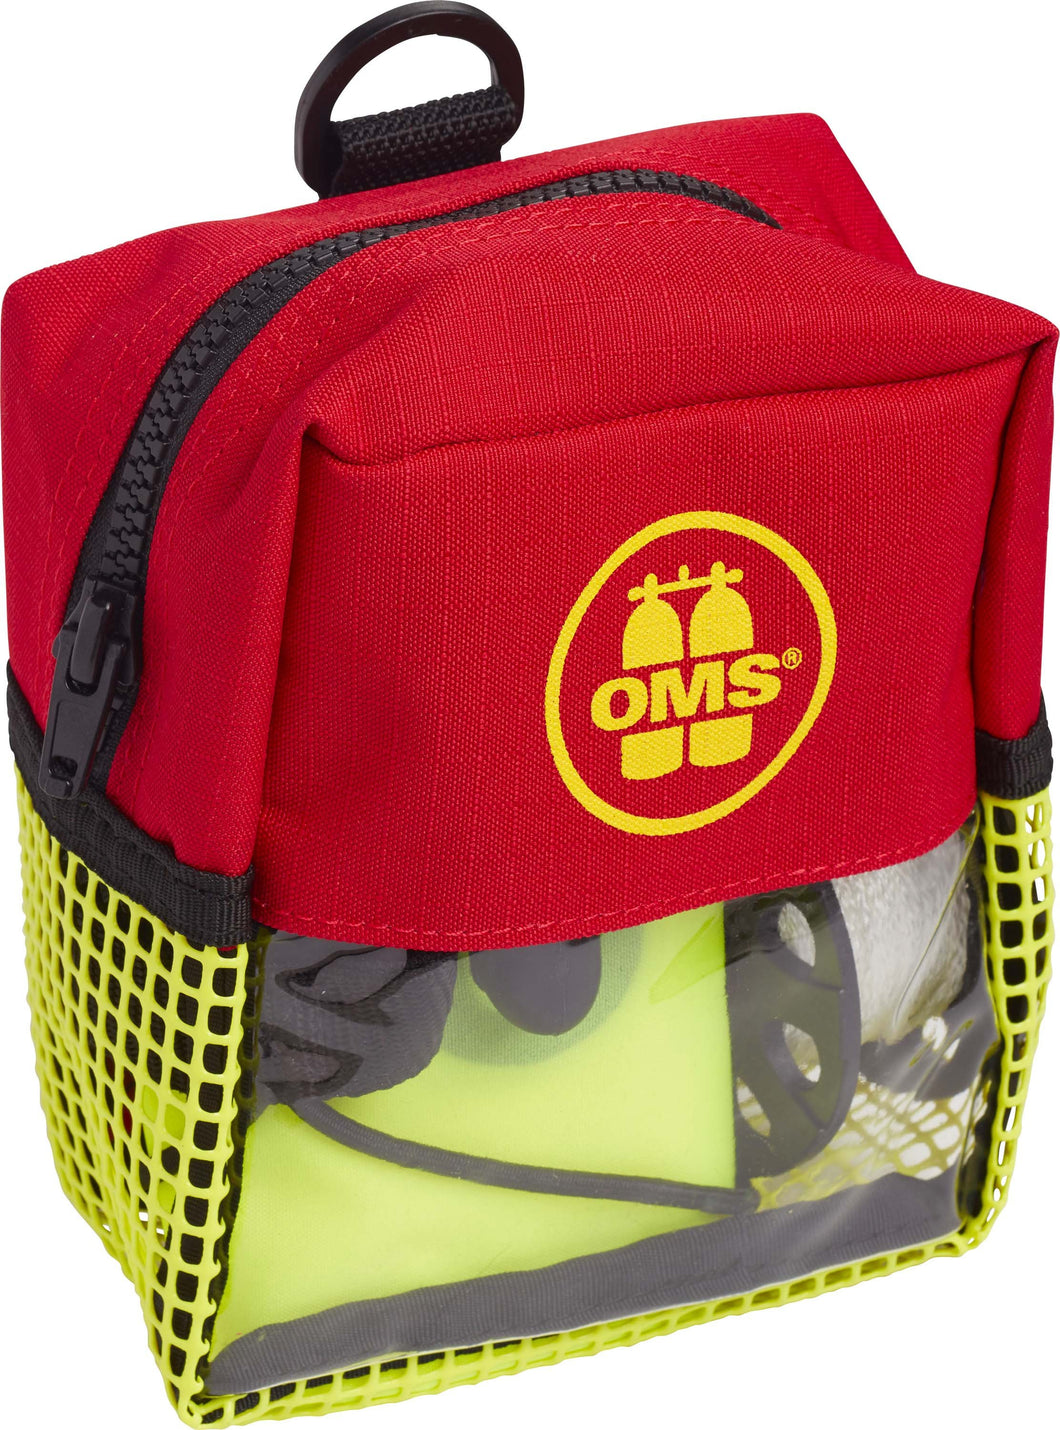 OMS Safety I (Closed 3.3' / 1 meter SMB, Spool 75' & Safety Pocket)